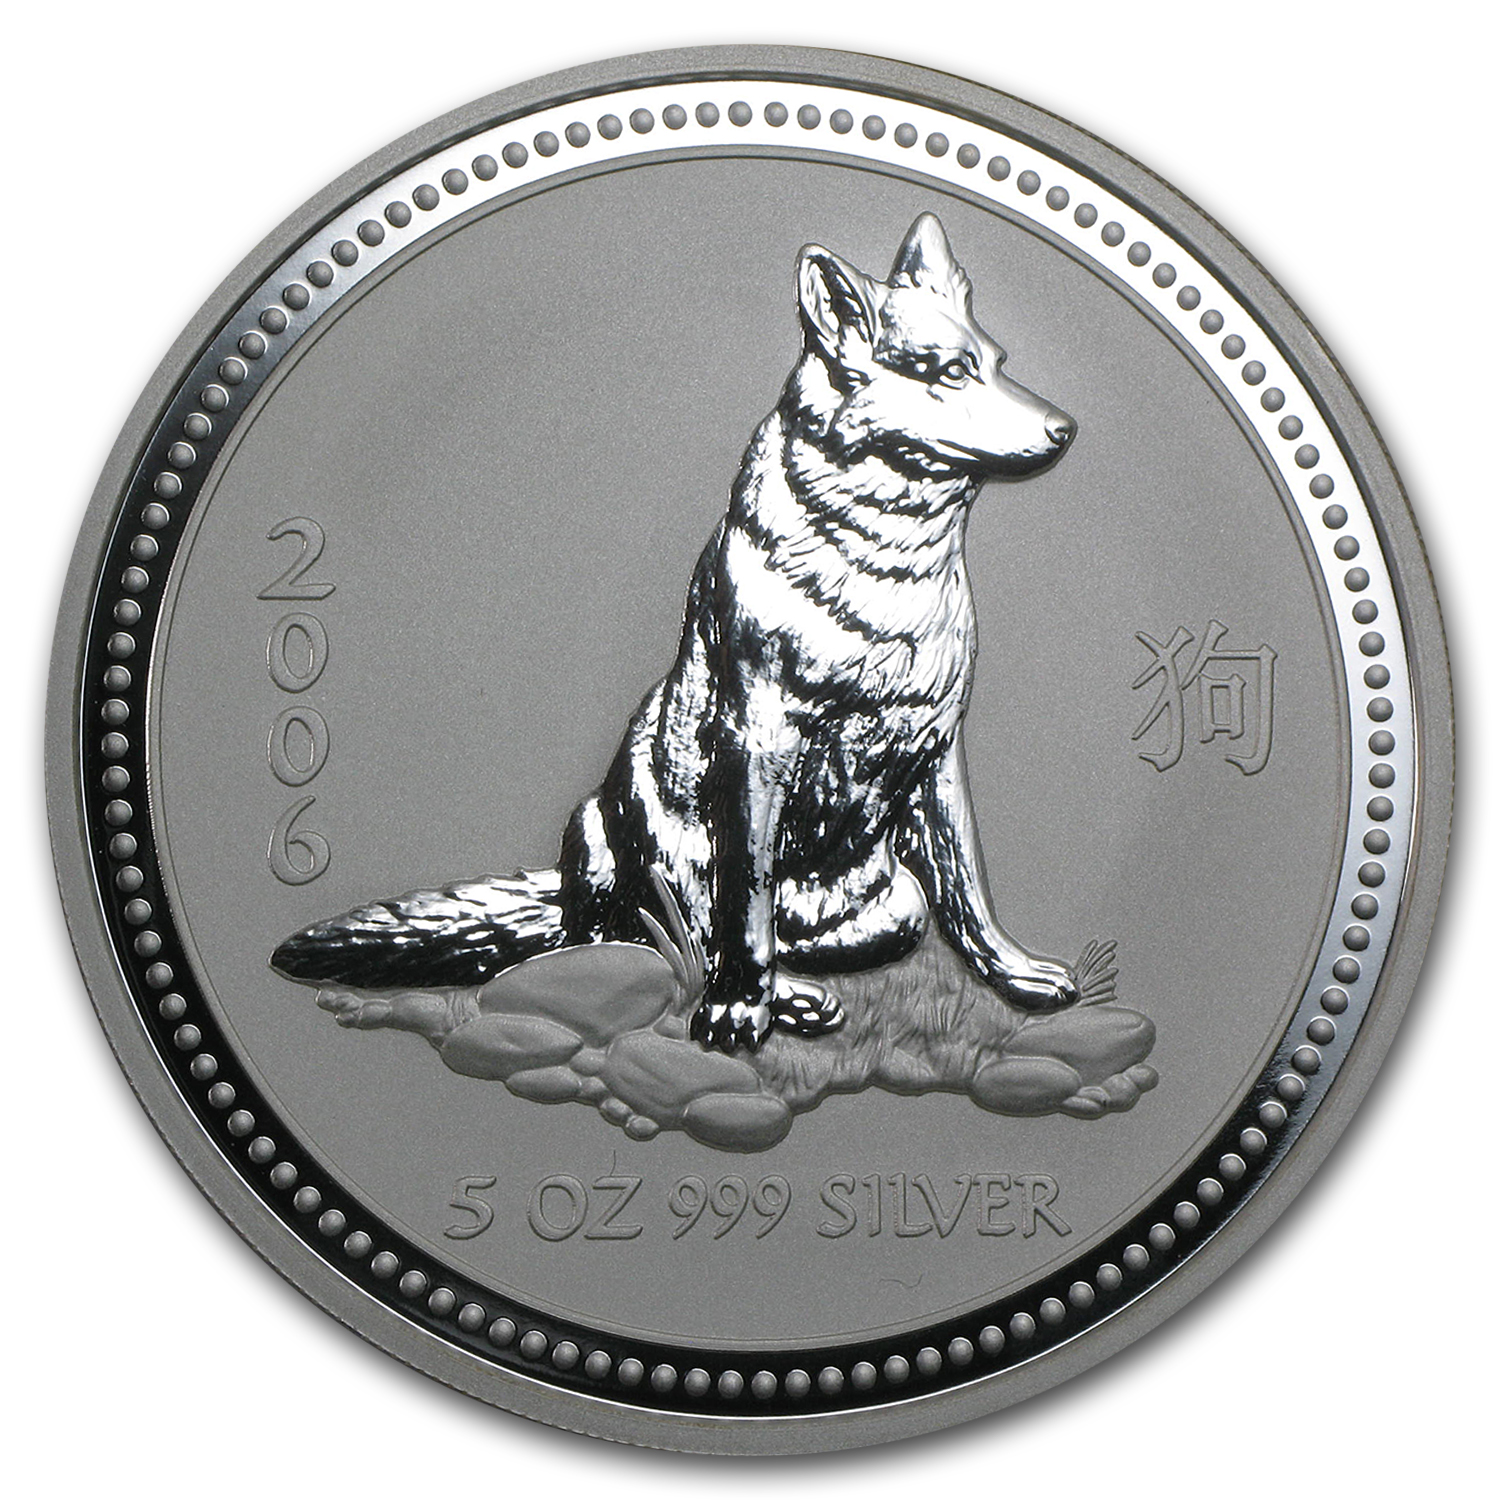 2006 Australia 5 oz Silver Year of the Dog BU